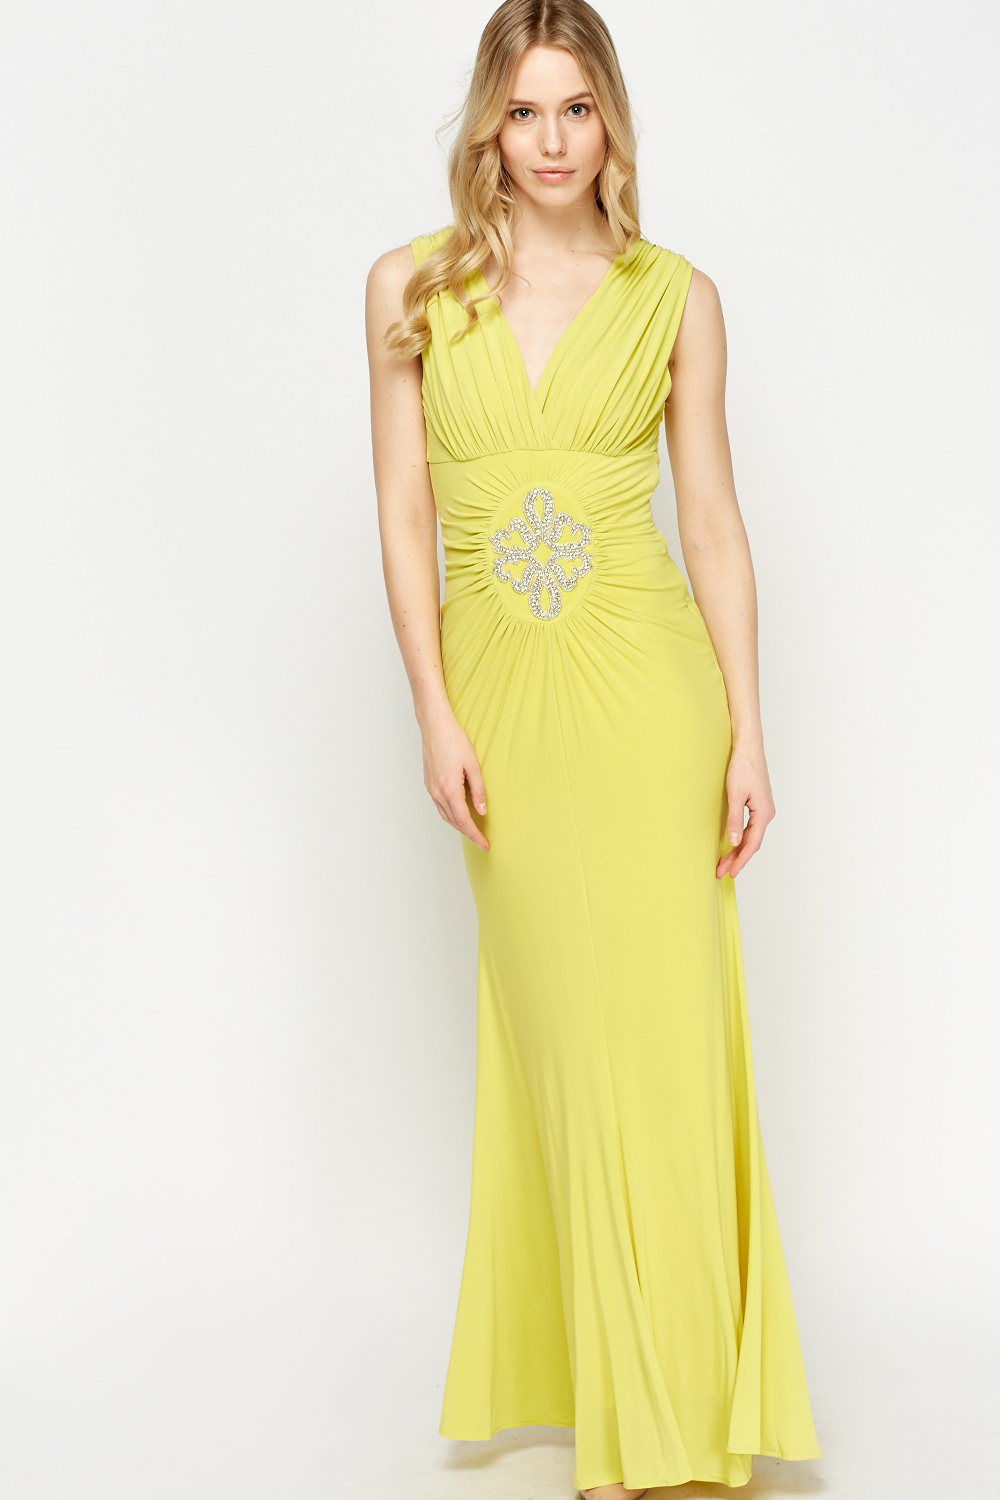 037f74e959f Encrusted Ruched Plunge Maxi Dress - Just £5